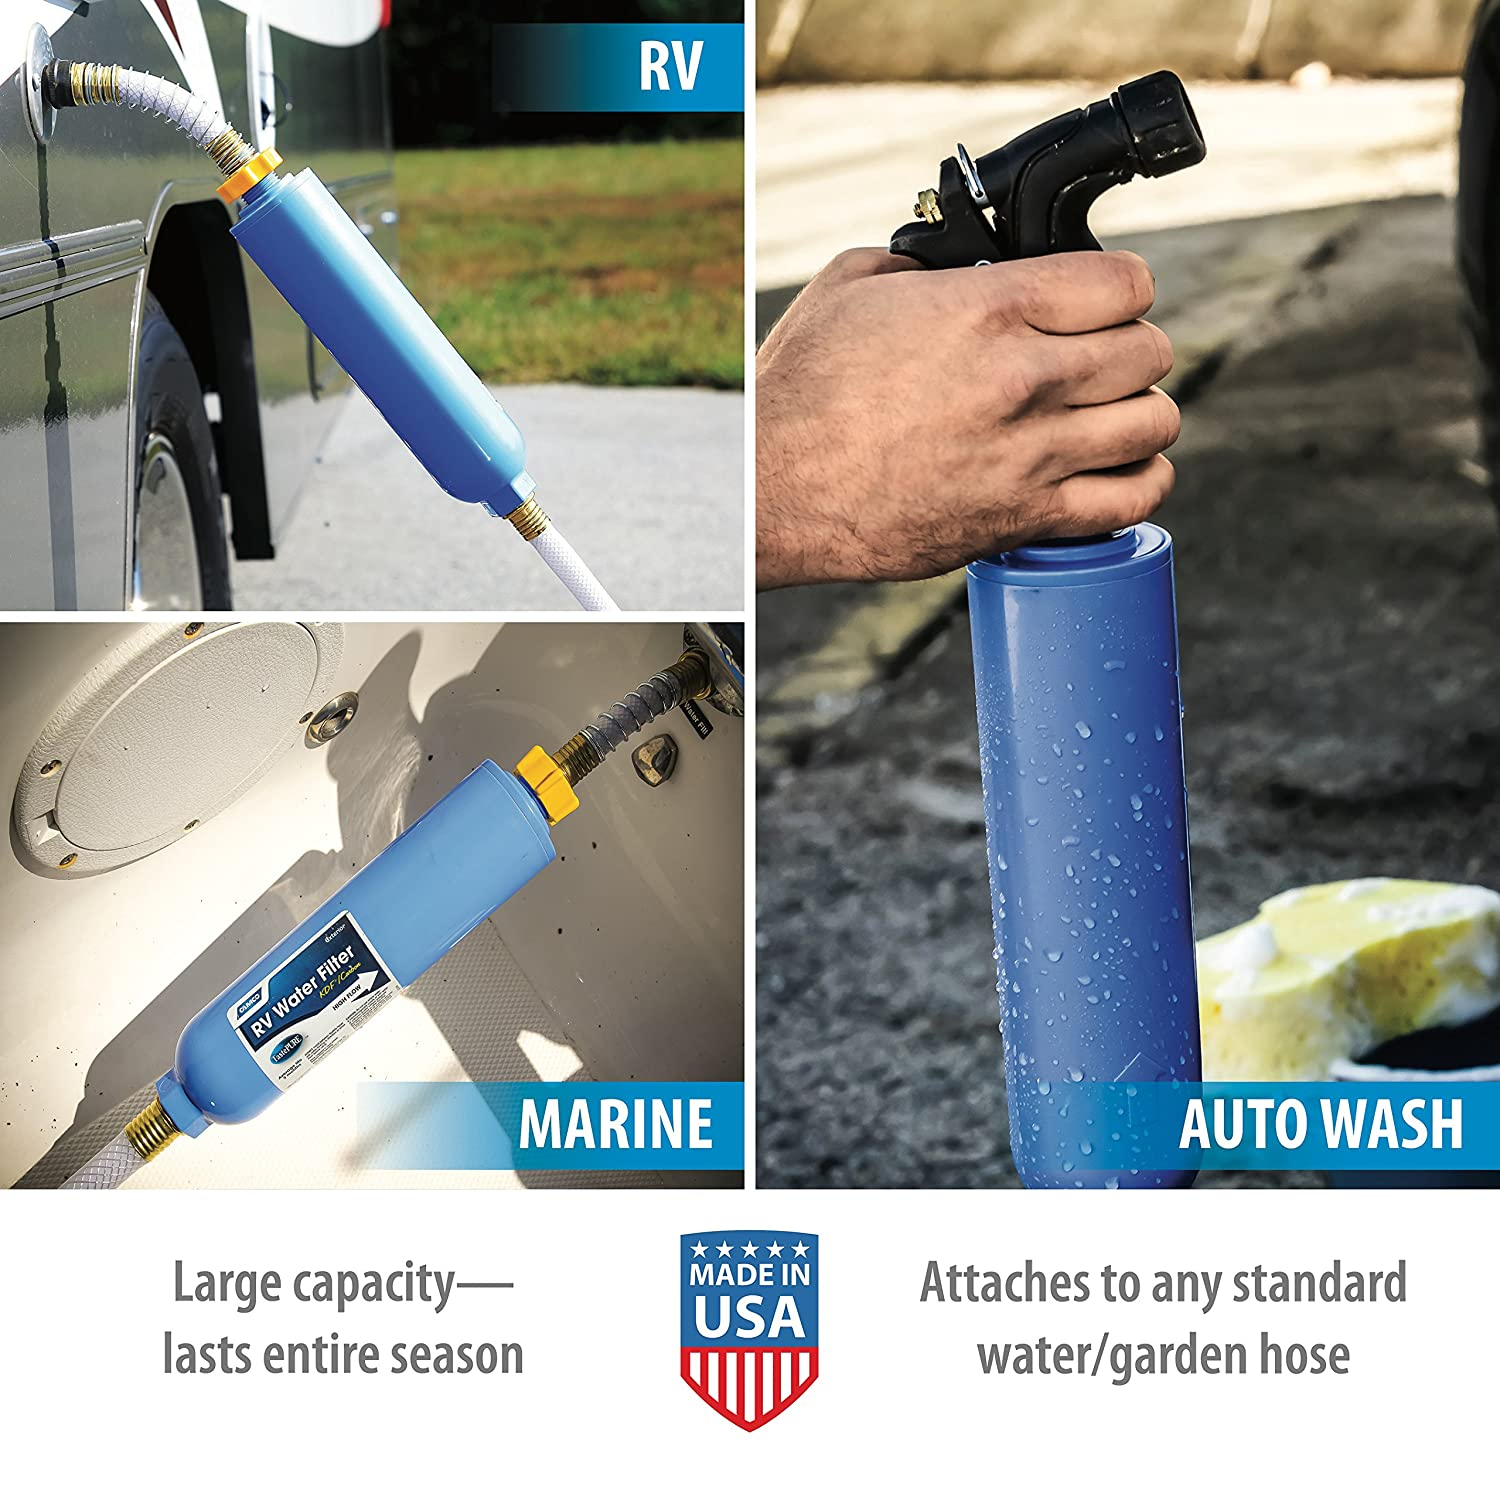 RV In Line Water Filter made our list of camper gifts that make perfect RV gifts which are unique gifts for RV owners